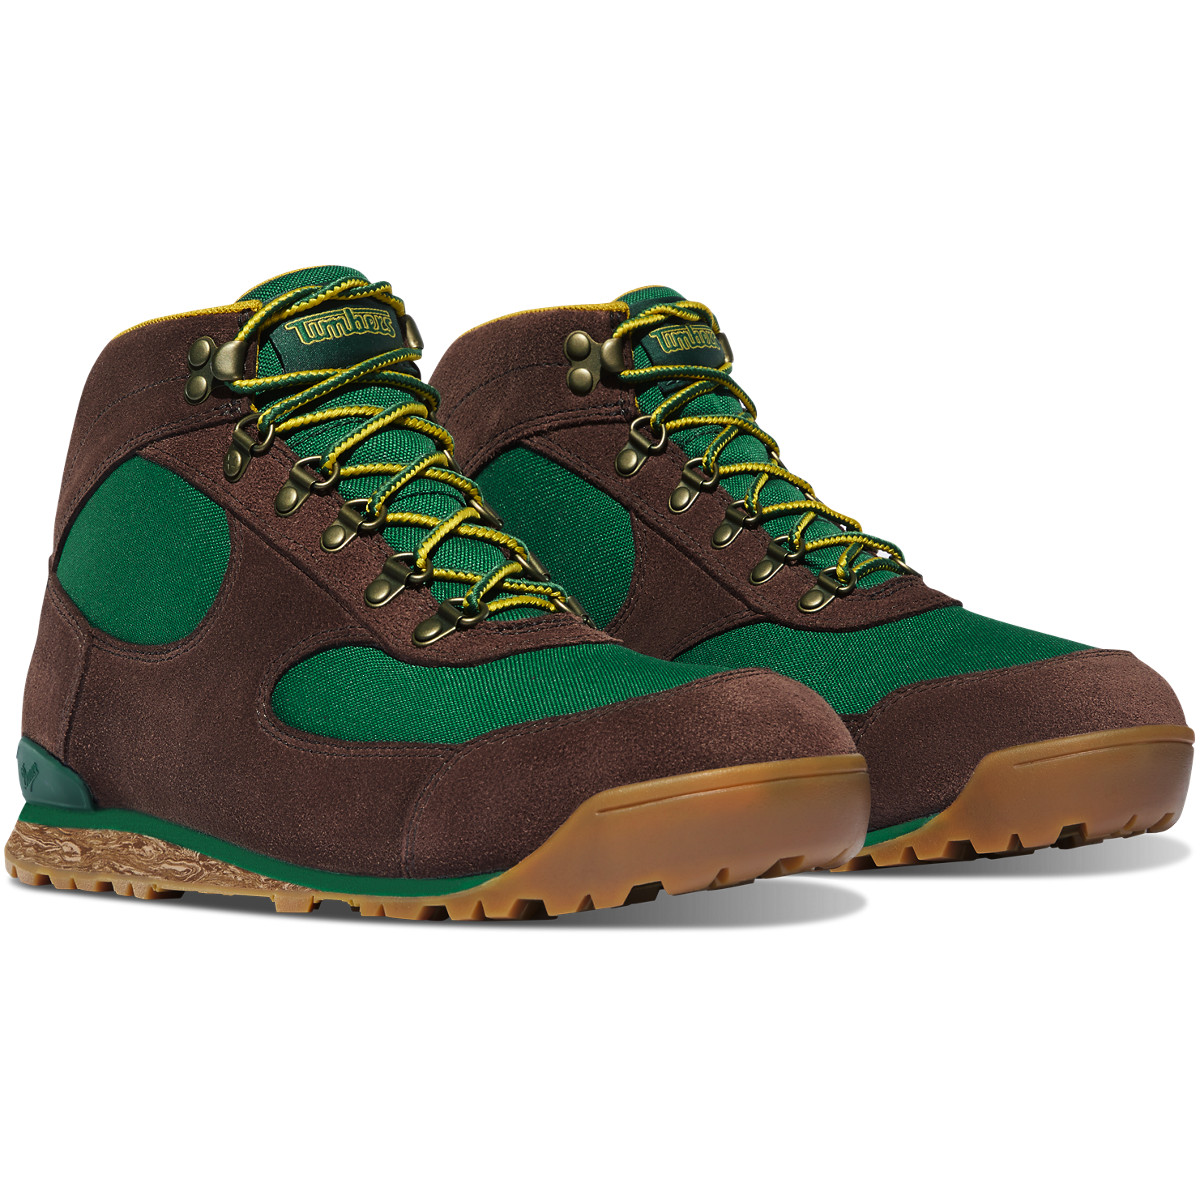 Women's Danner x Timbers Jag 2019 Edition